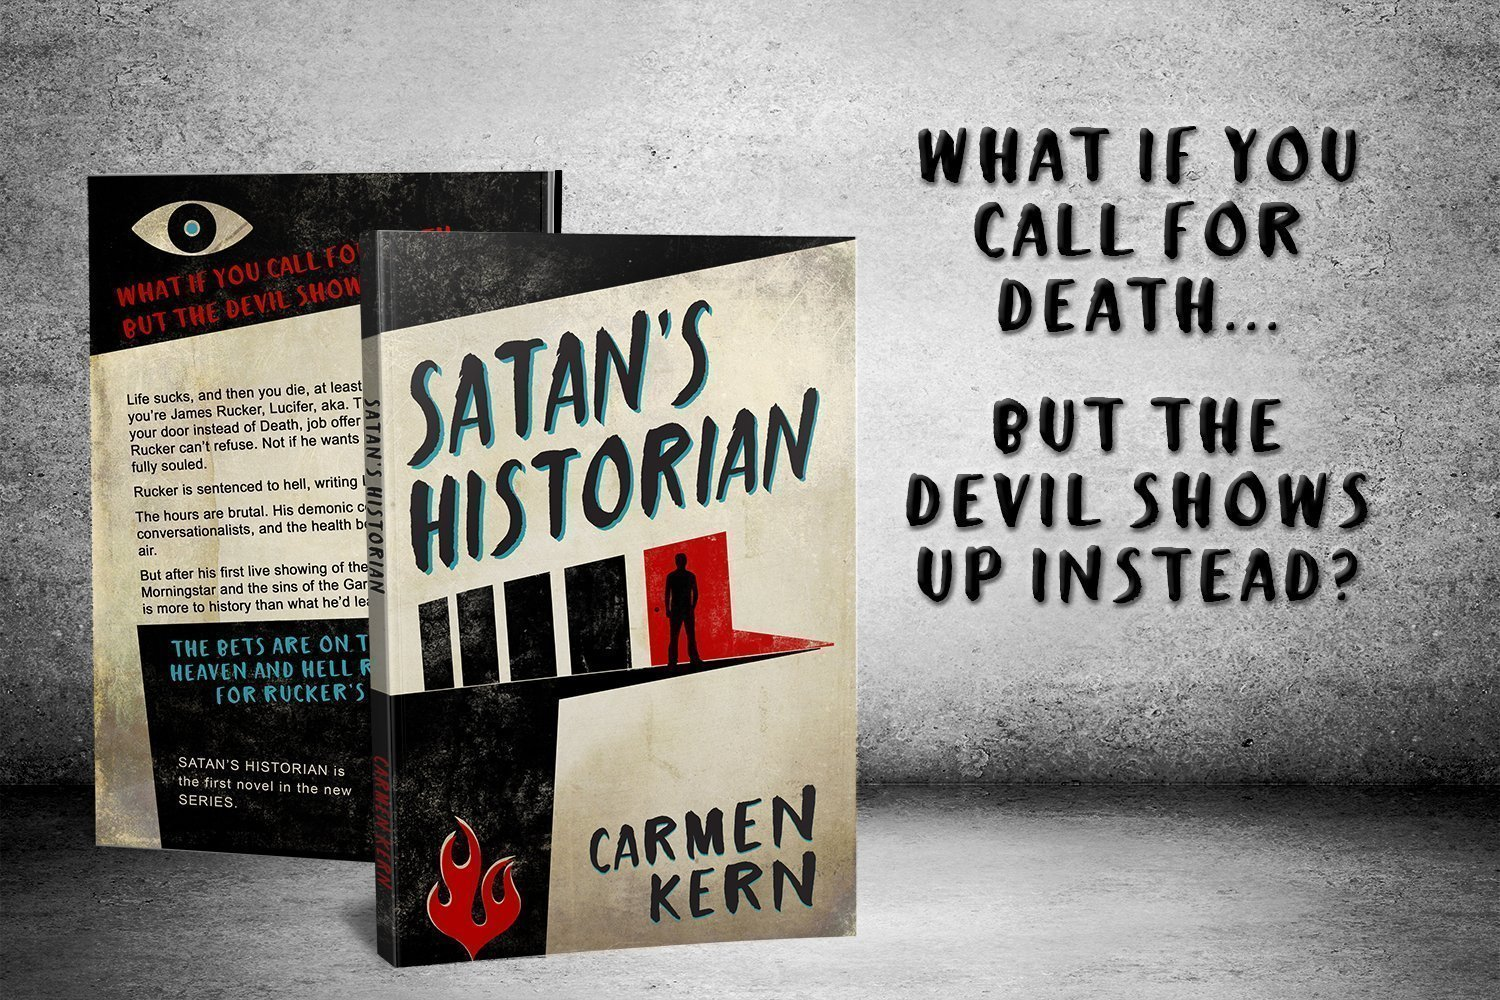 What if you call for death, but the devil shows up instead?